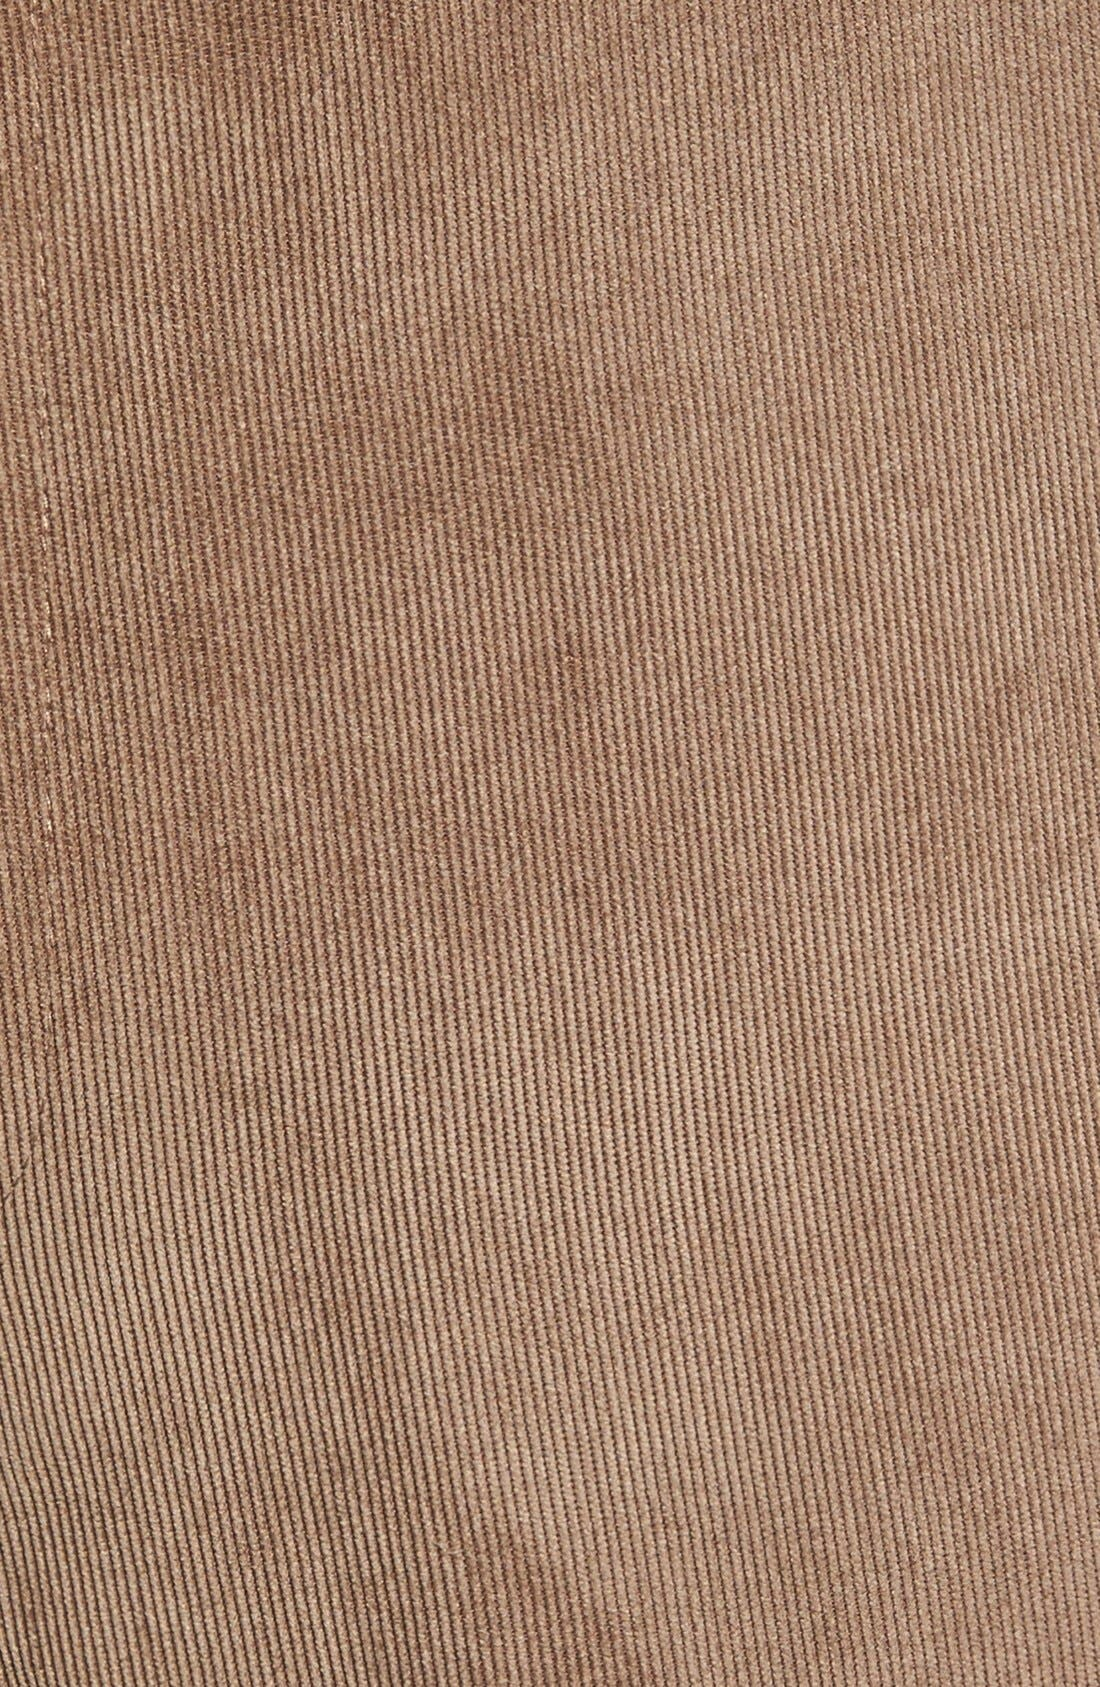 Alternate Image 3  - Linea Naturale 'Micro-Aire' Flat Front Corduroy Trousers